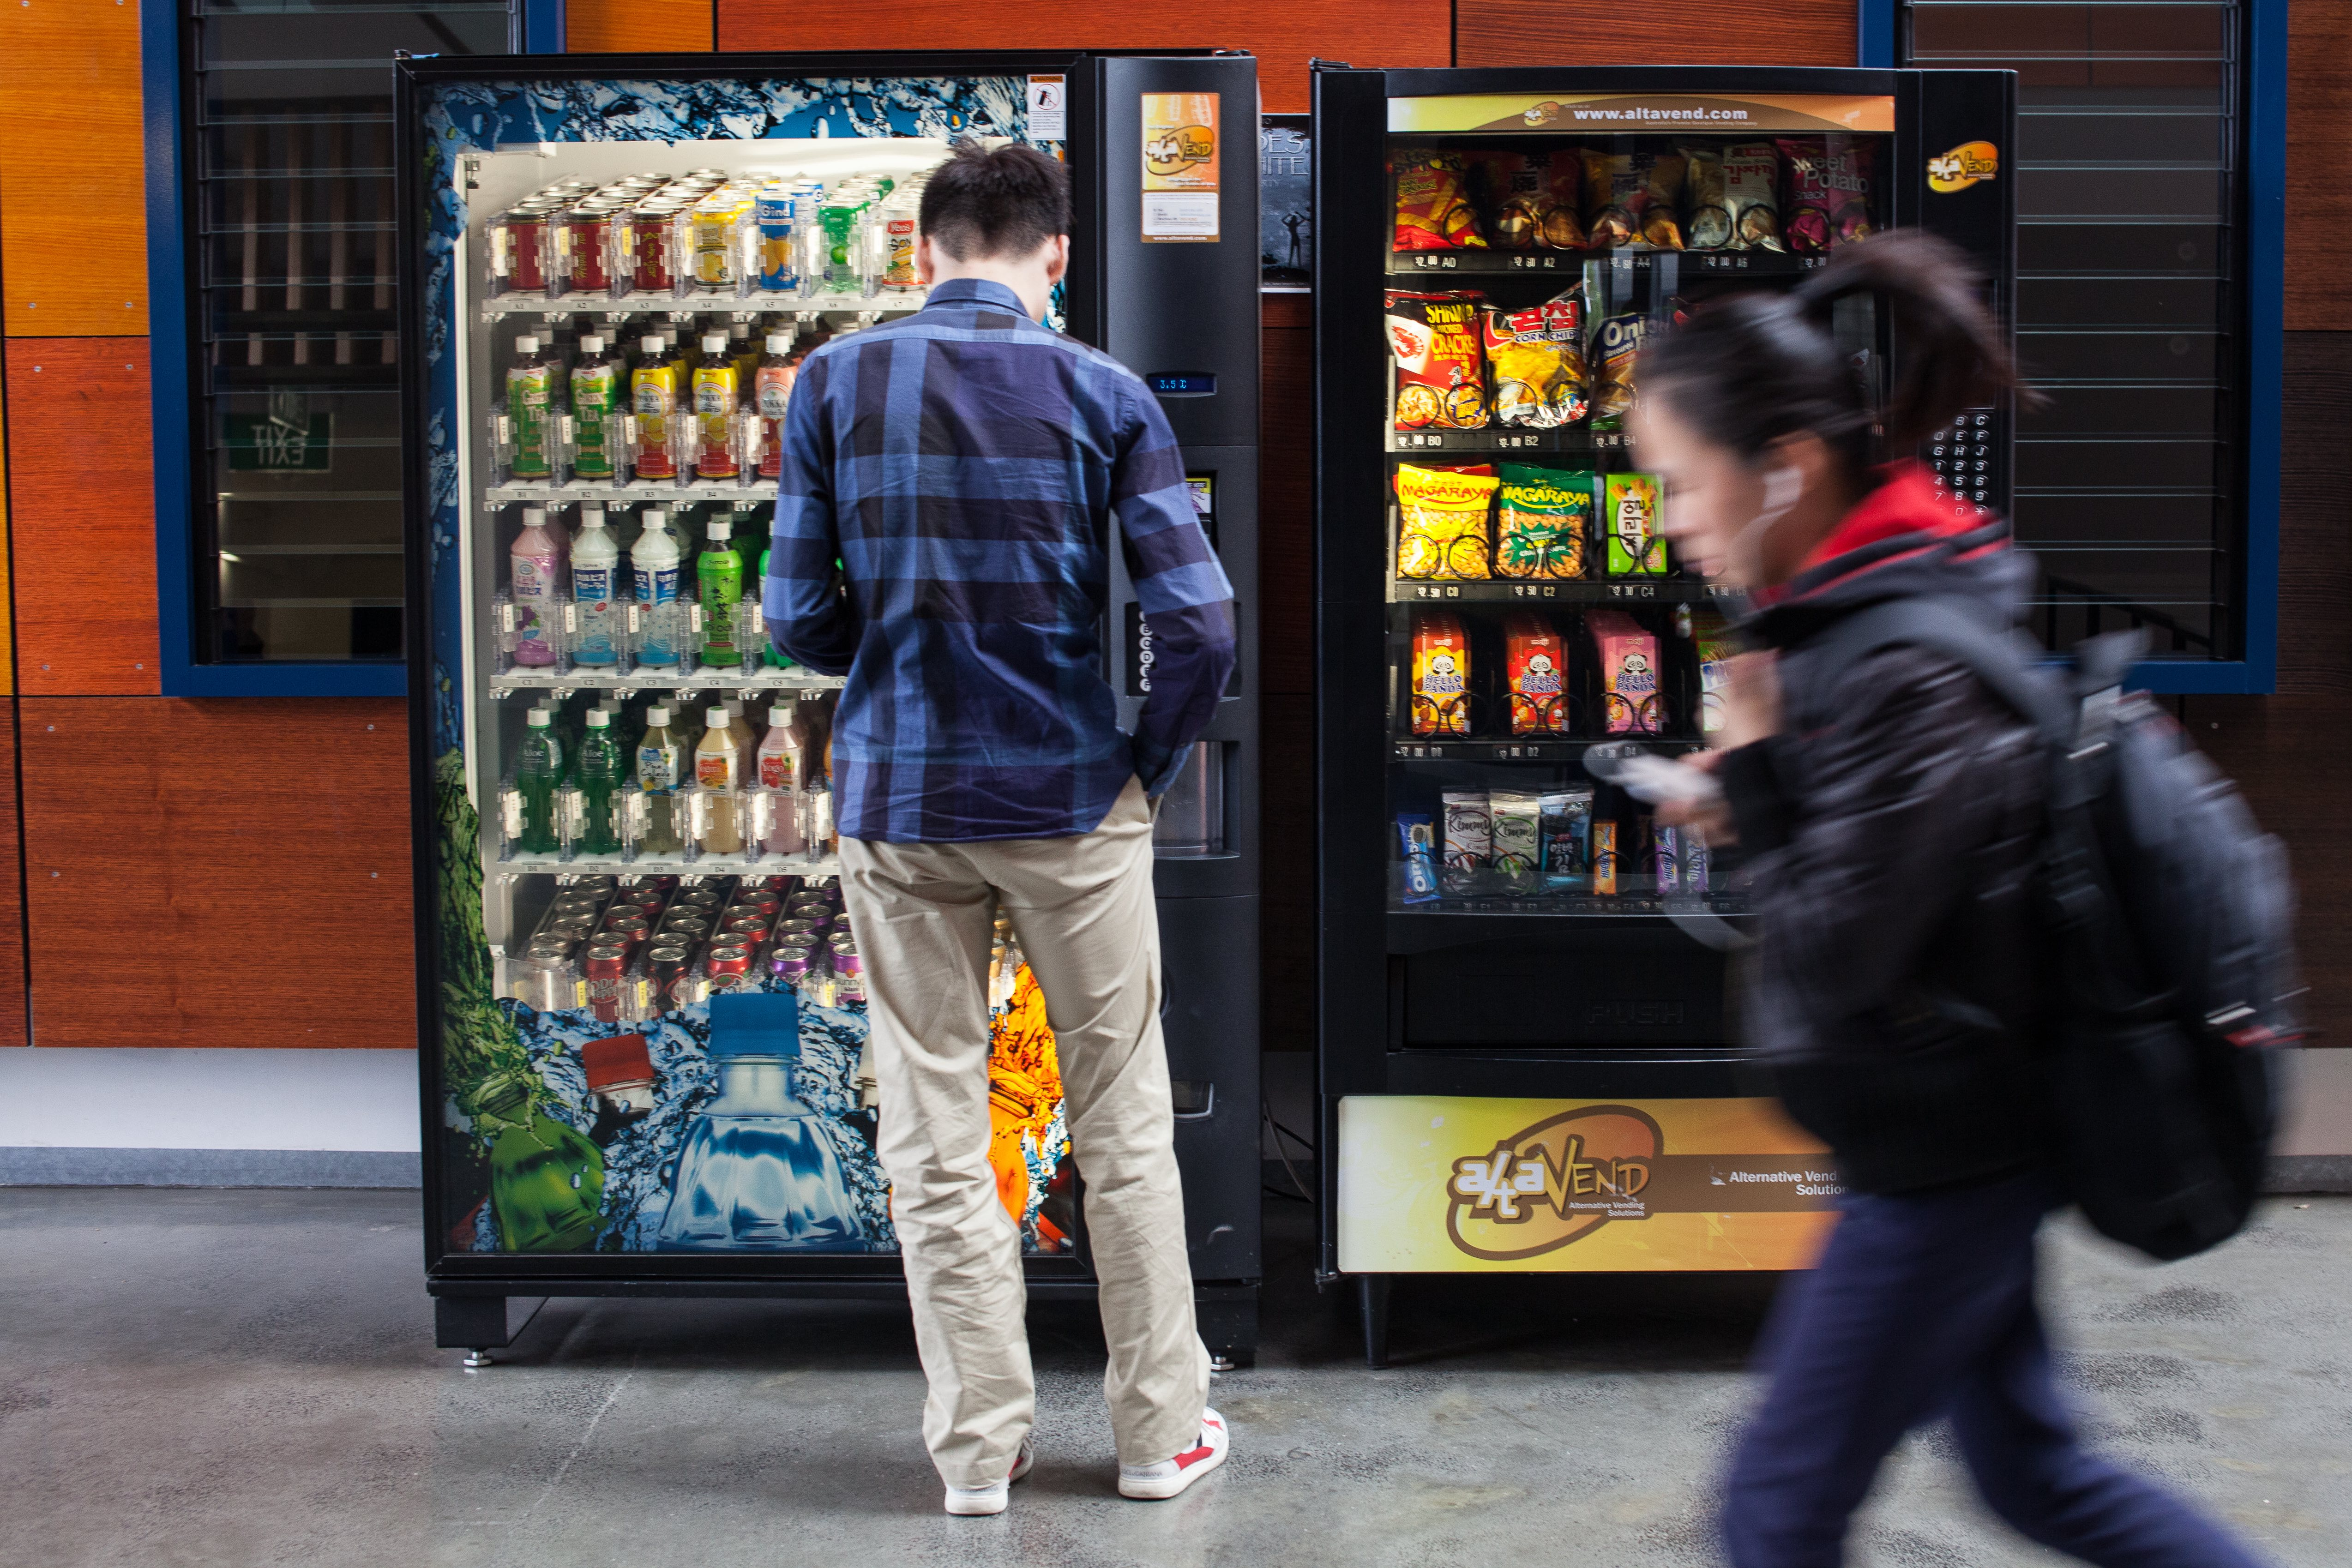 Altavend brings multicultural vending program to the University of Western Australia